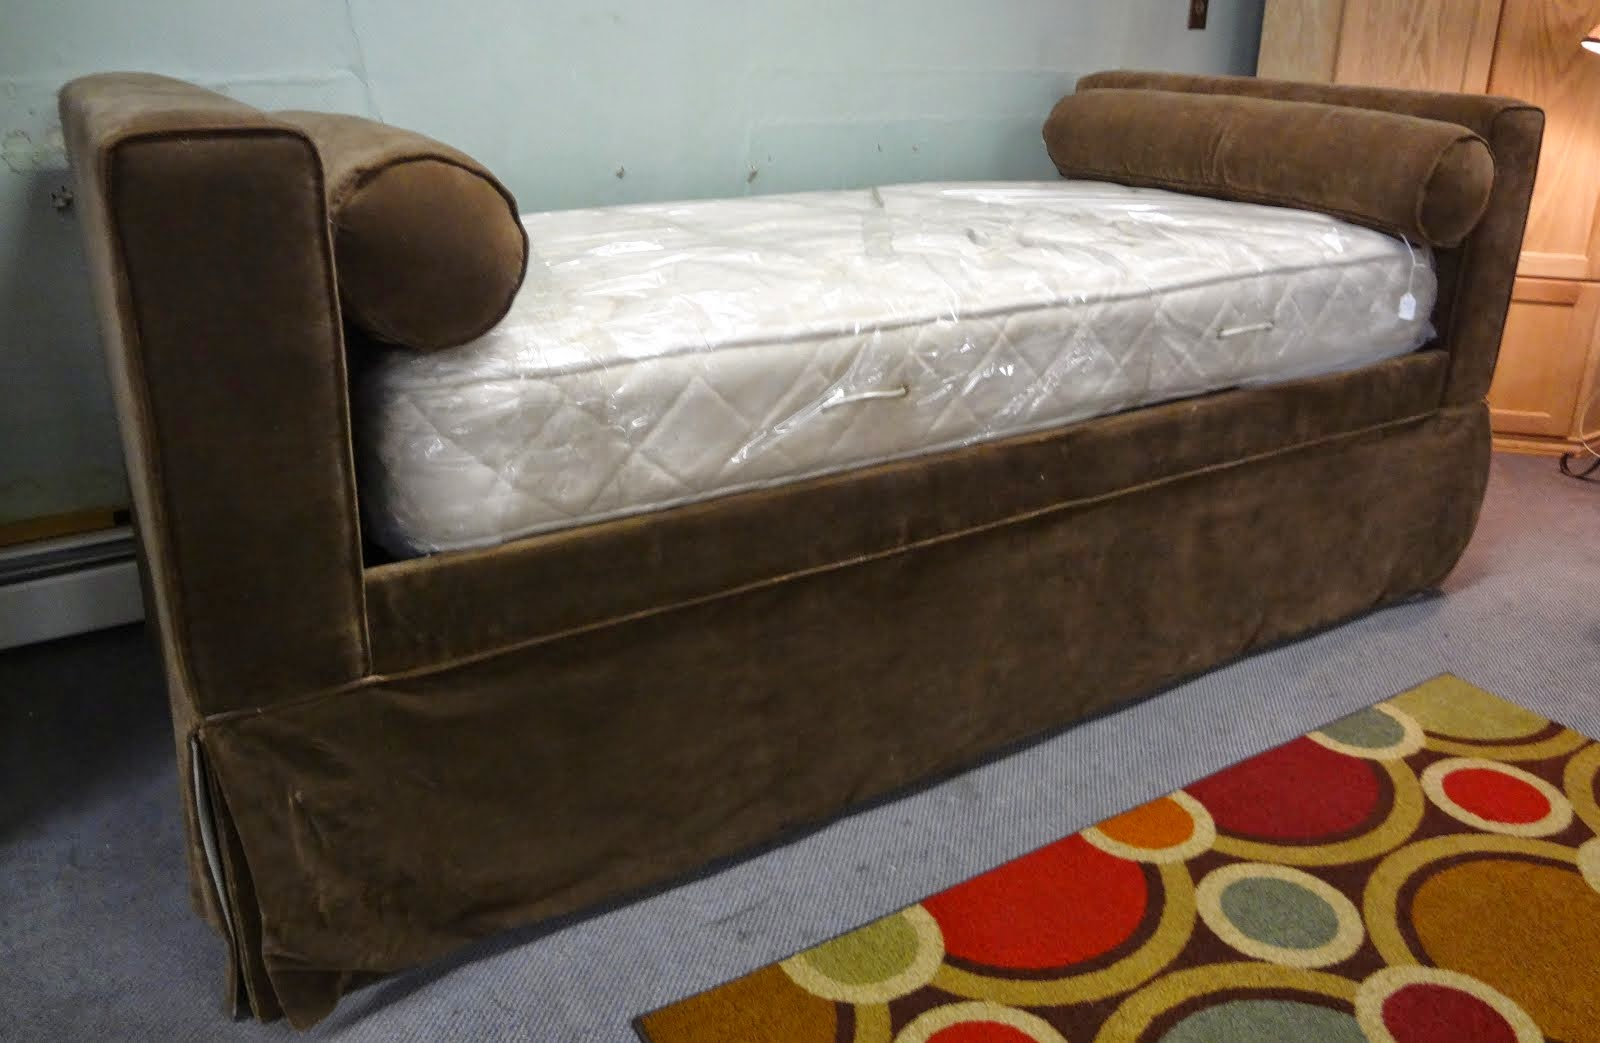 Ballard Design Day Bed w/ trundle!